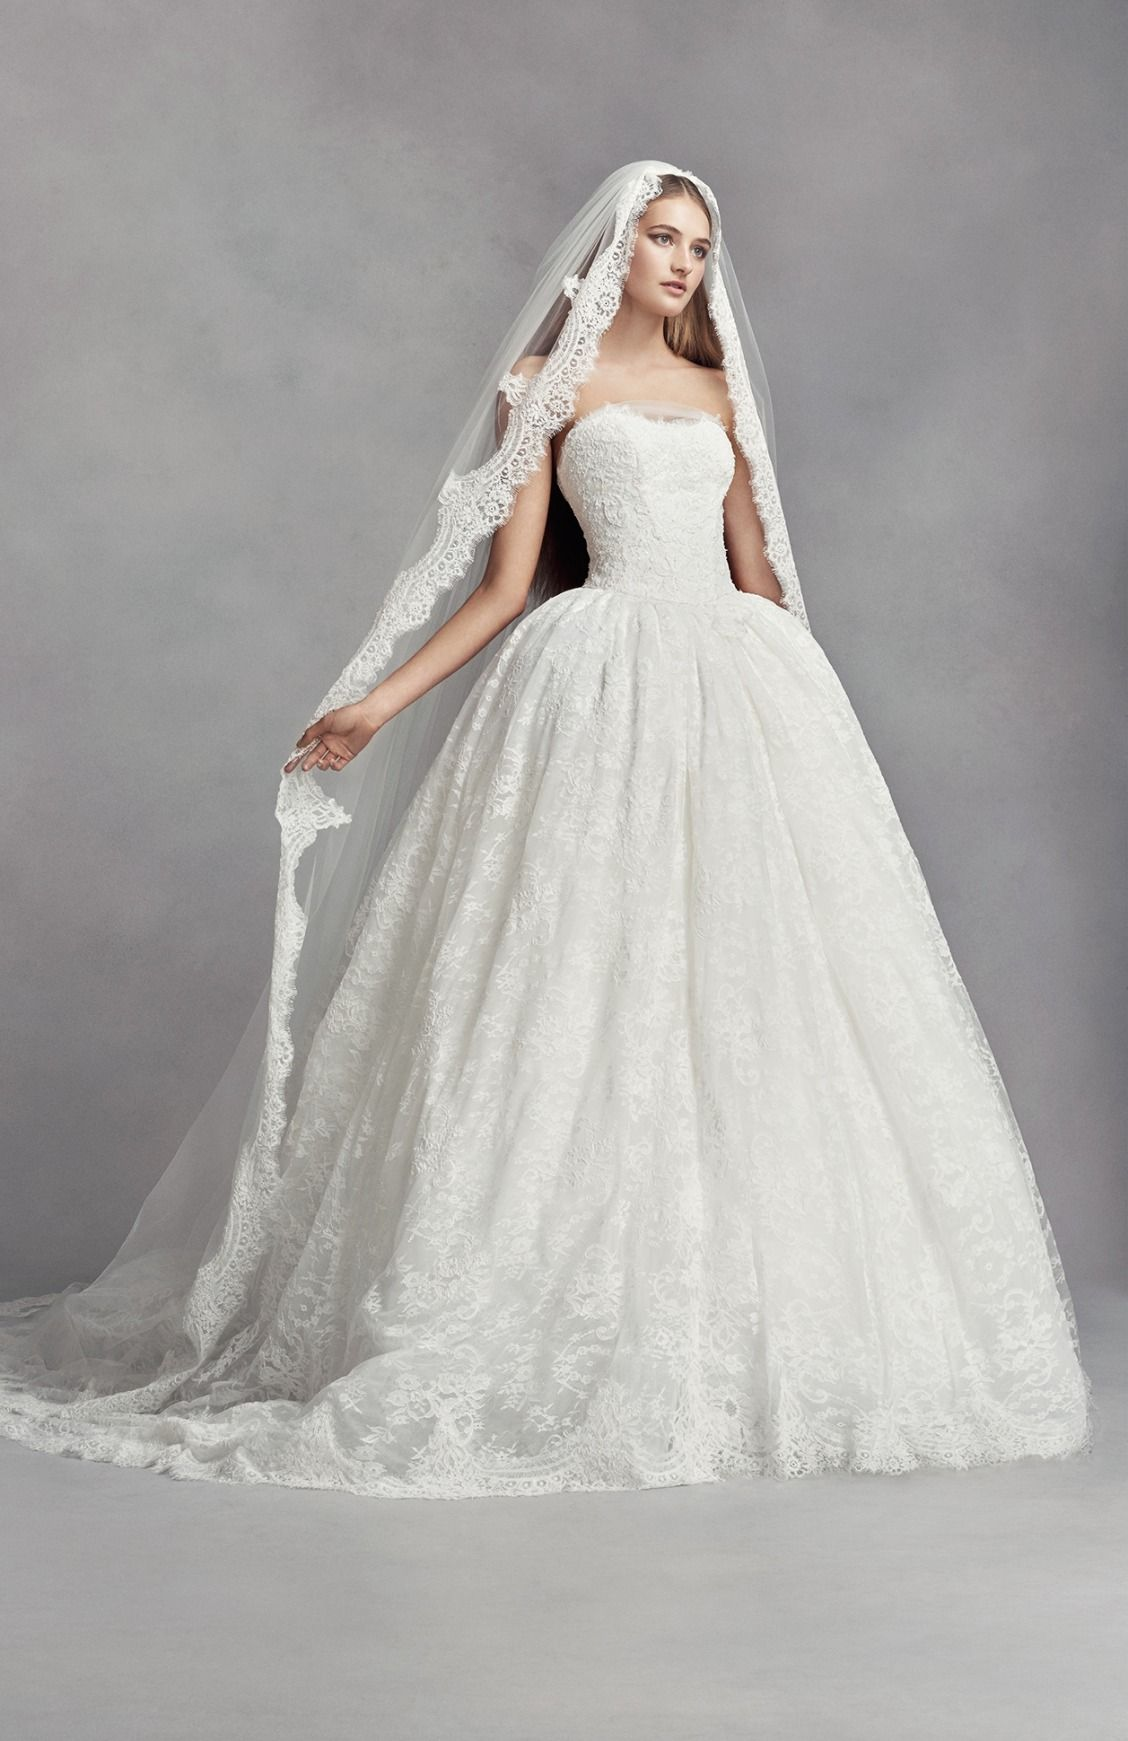 9ec996337220 Ivory Lace Appliqued Mantilla-Style Cathedral Veil by White by Vera Wang  available at David's